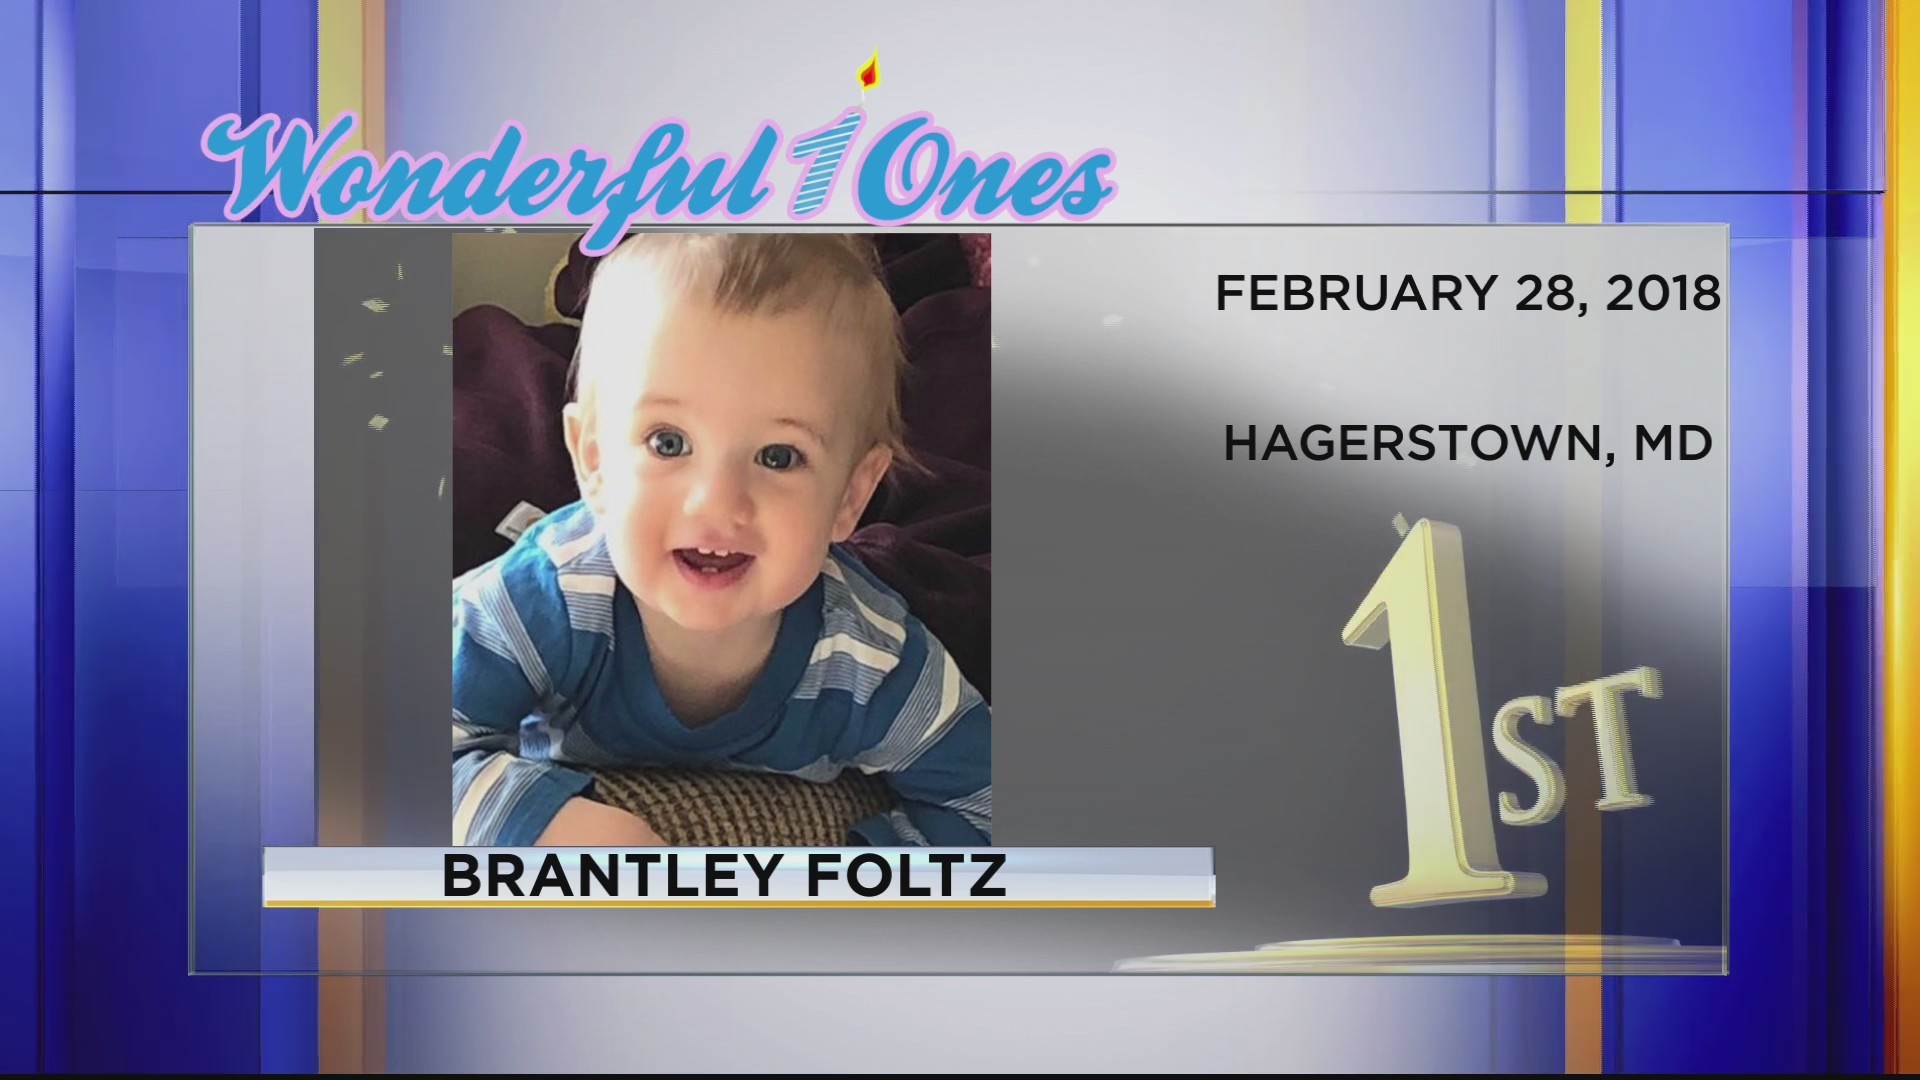 Wonderful_One_Brantley_Foltz_0_20190228175217